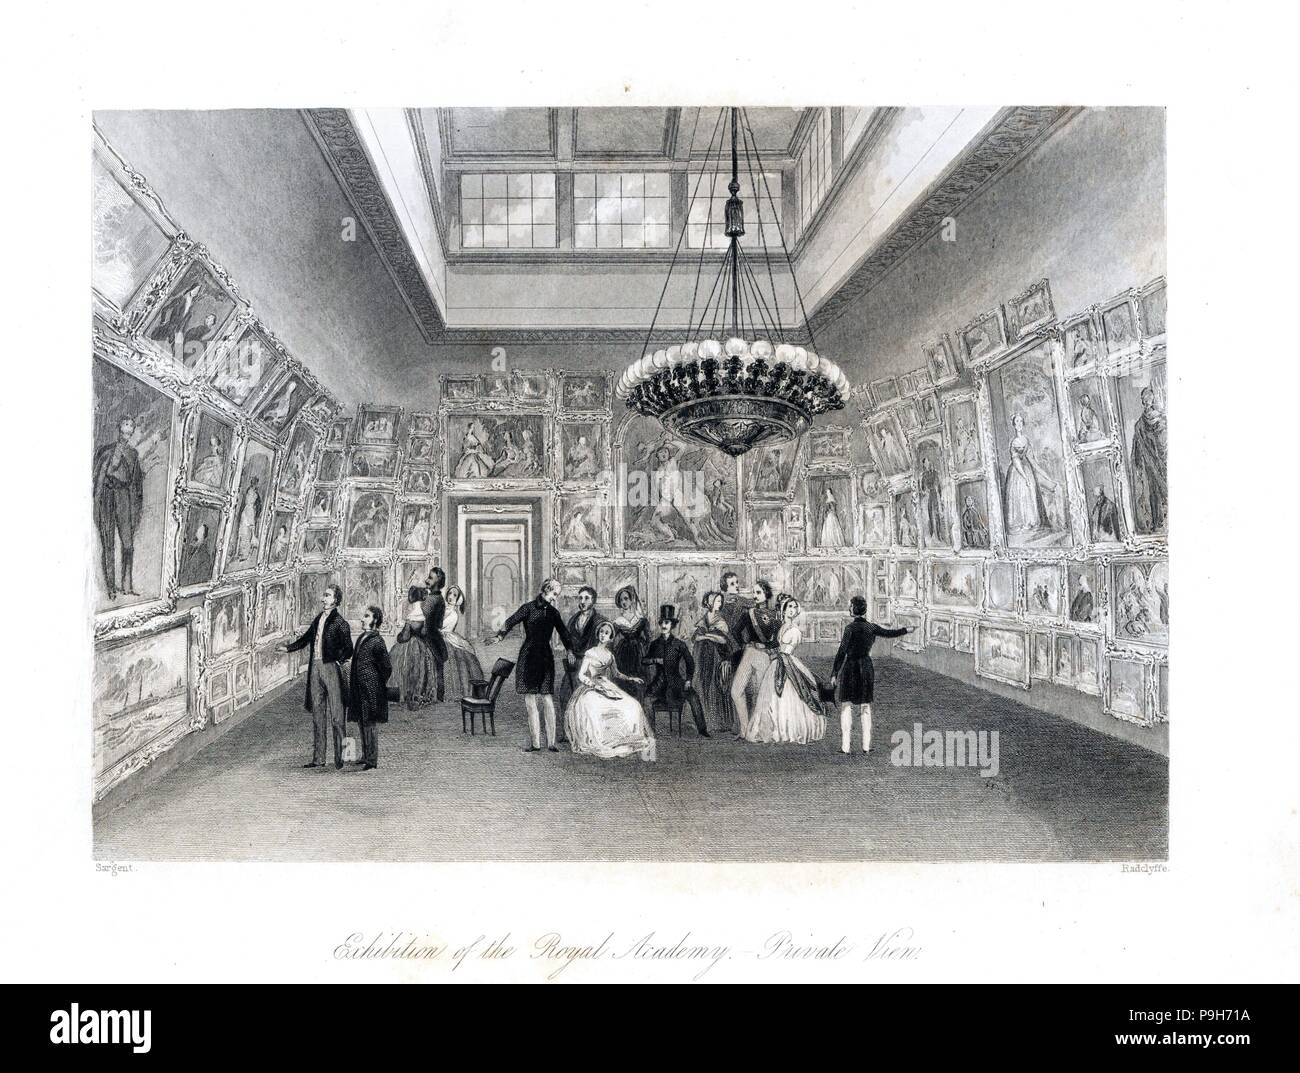 Private view for Queen Victoria of an exhibition at the Royal Academy of Arts. Steel engraving by Radclyffe after an illustration by Sargent from London Interiors, Their Costumes and Ceremonies, Joshua Mead, London, 1841. - Stock Image